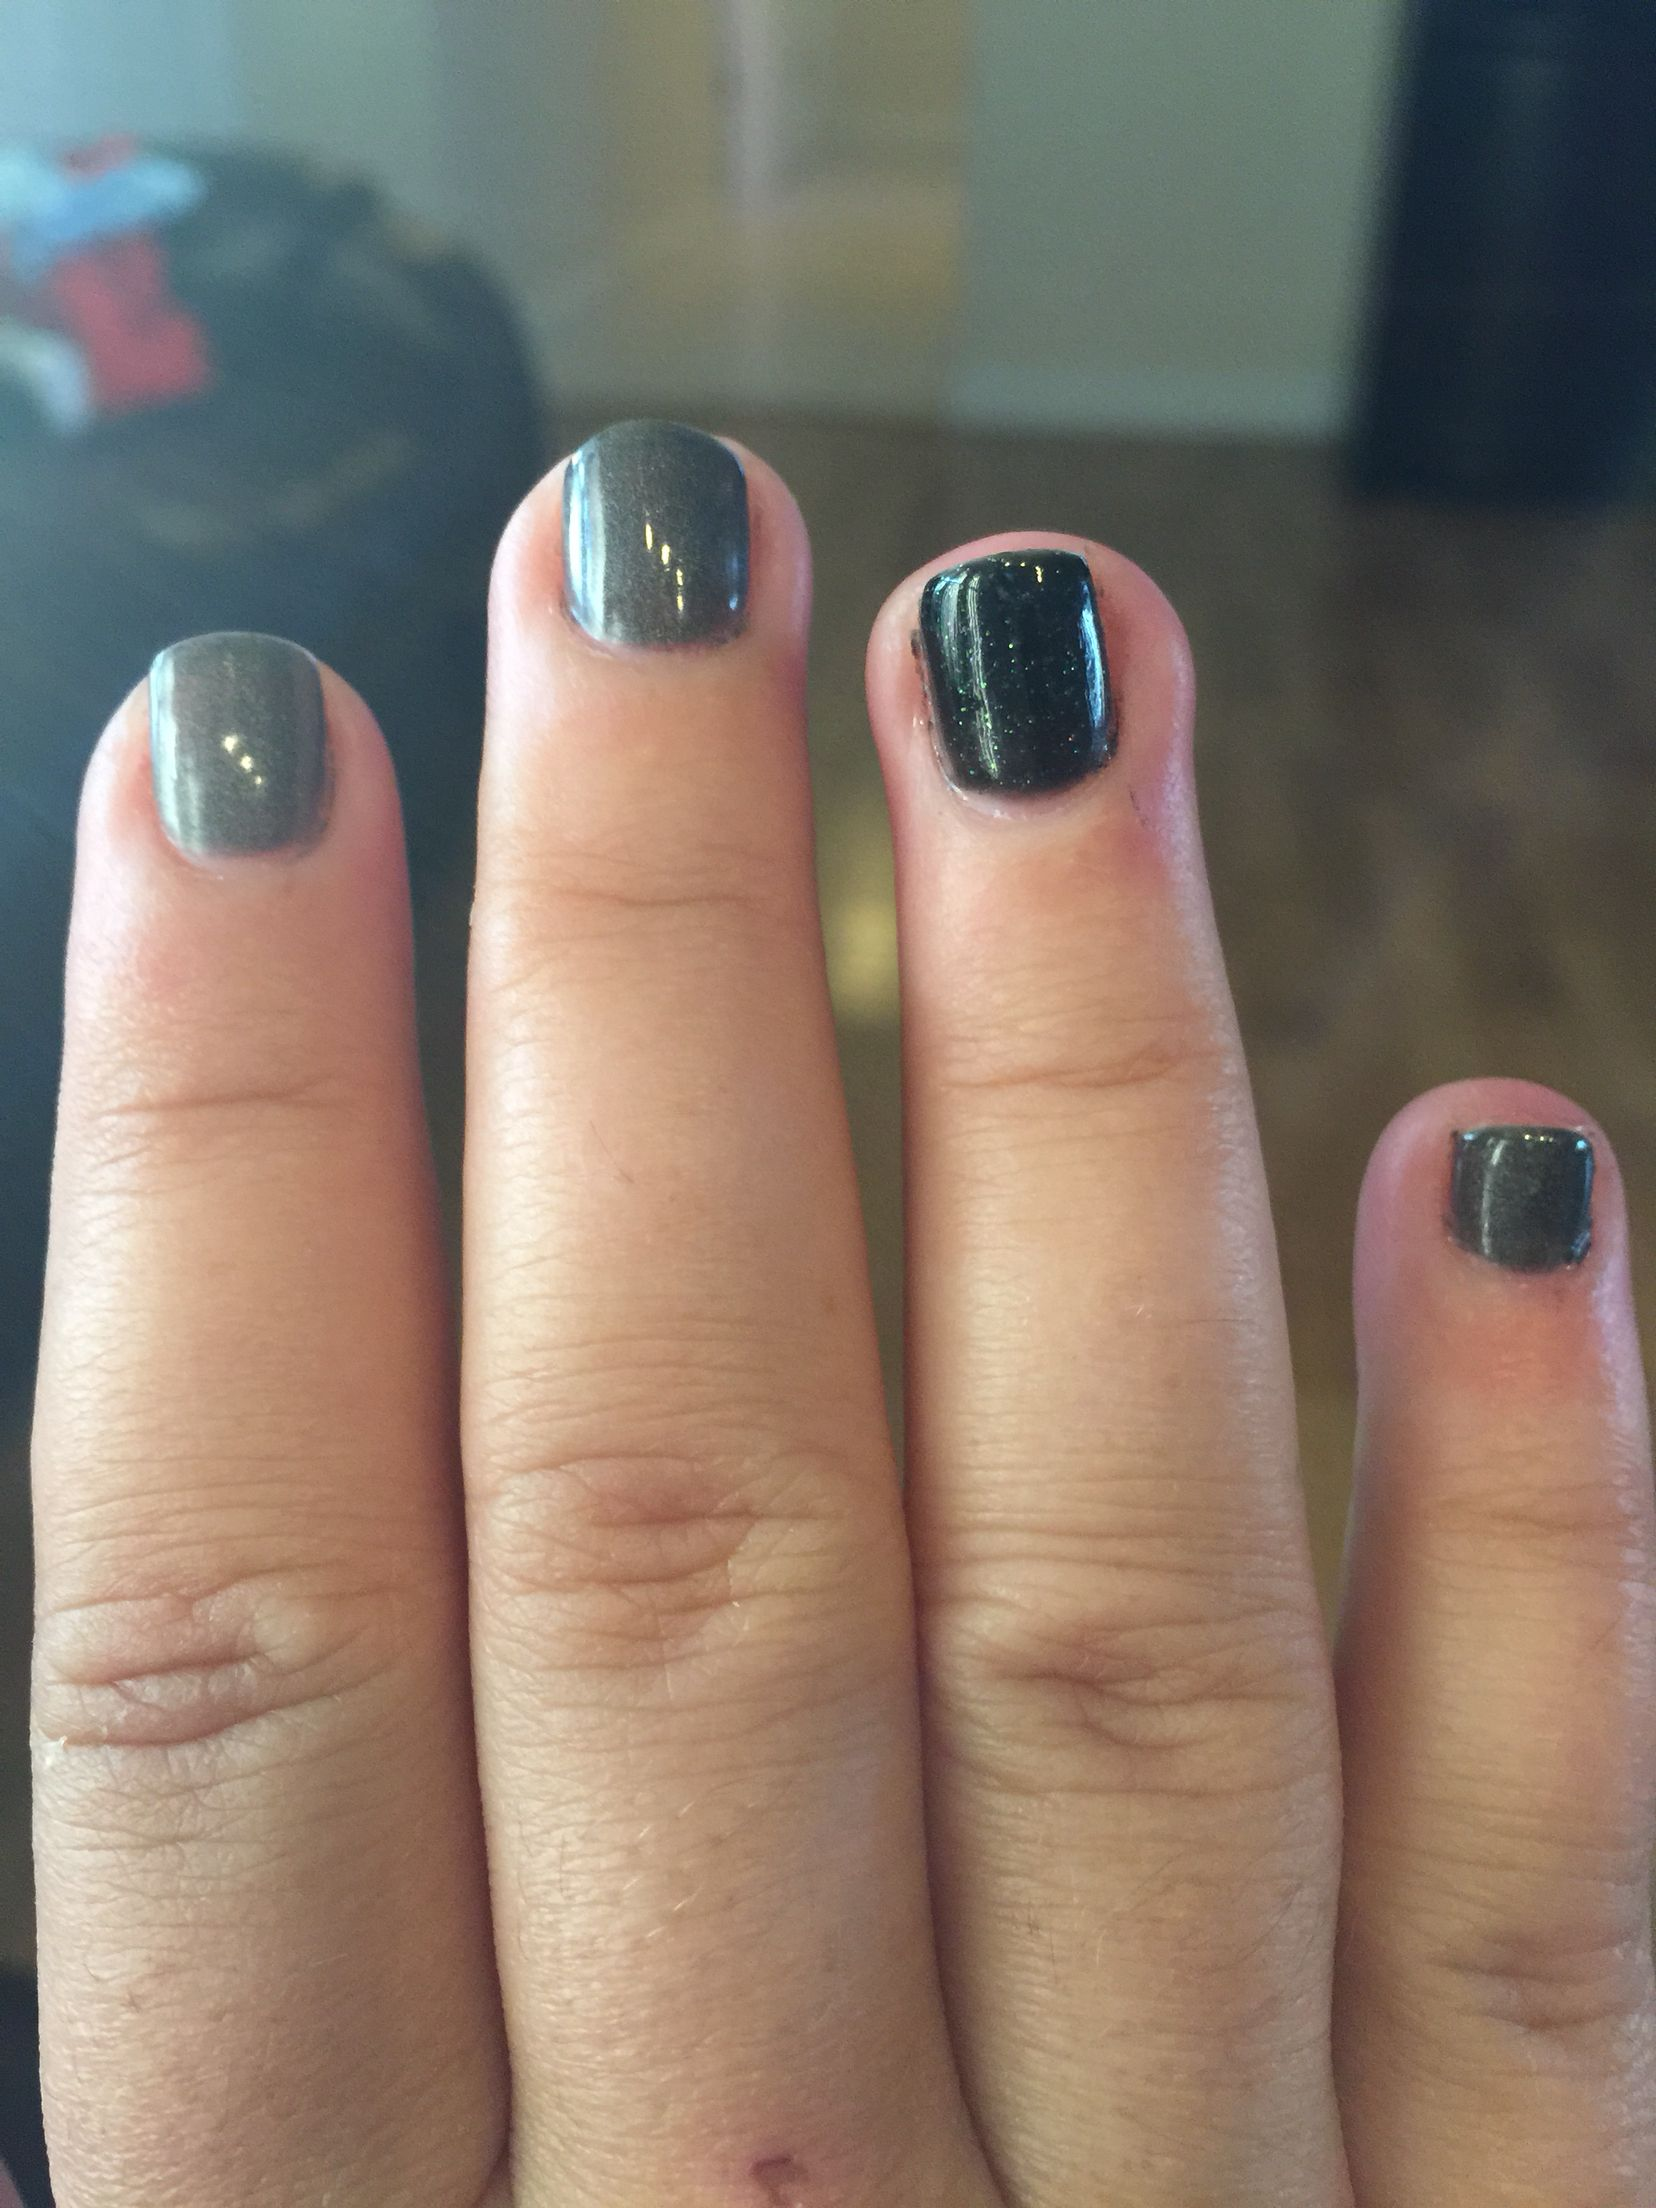 Gel nails for New Years Eve (With images) New year's